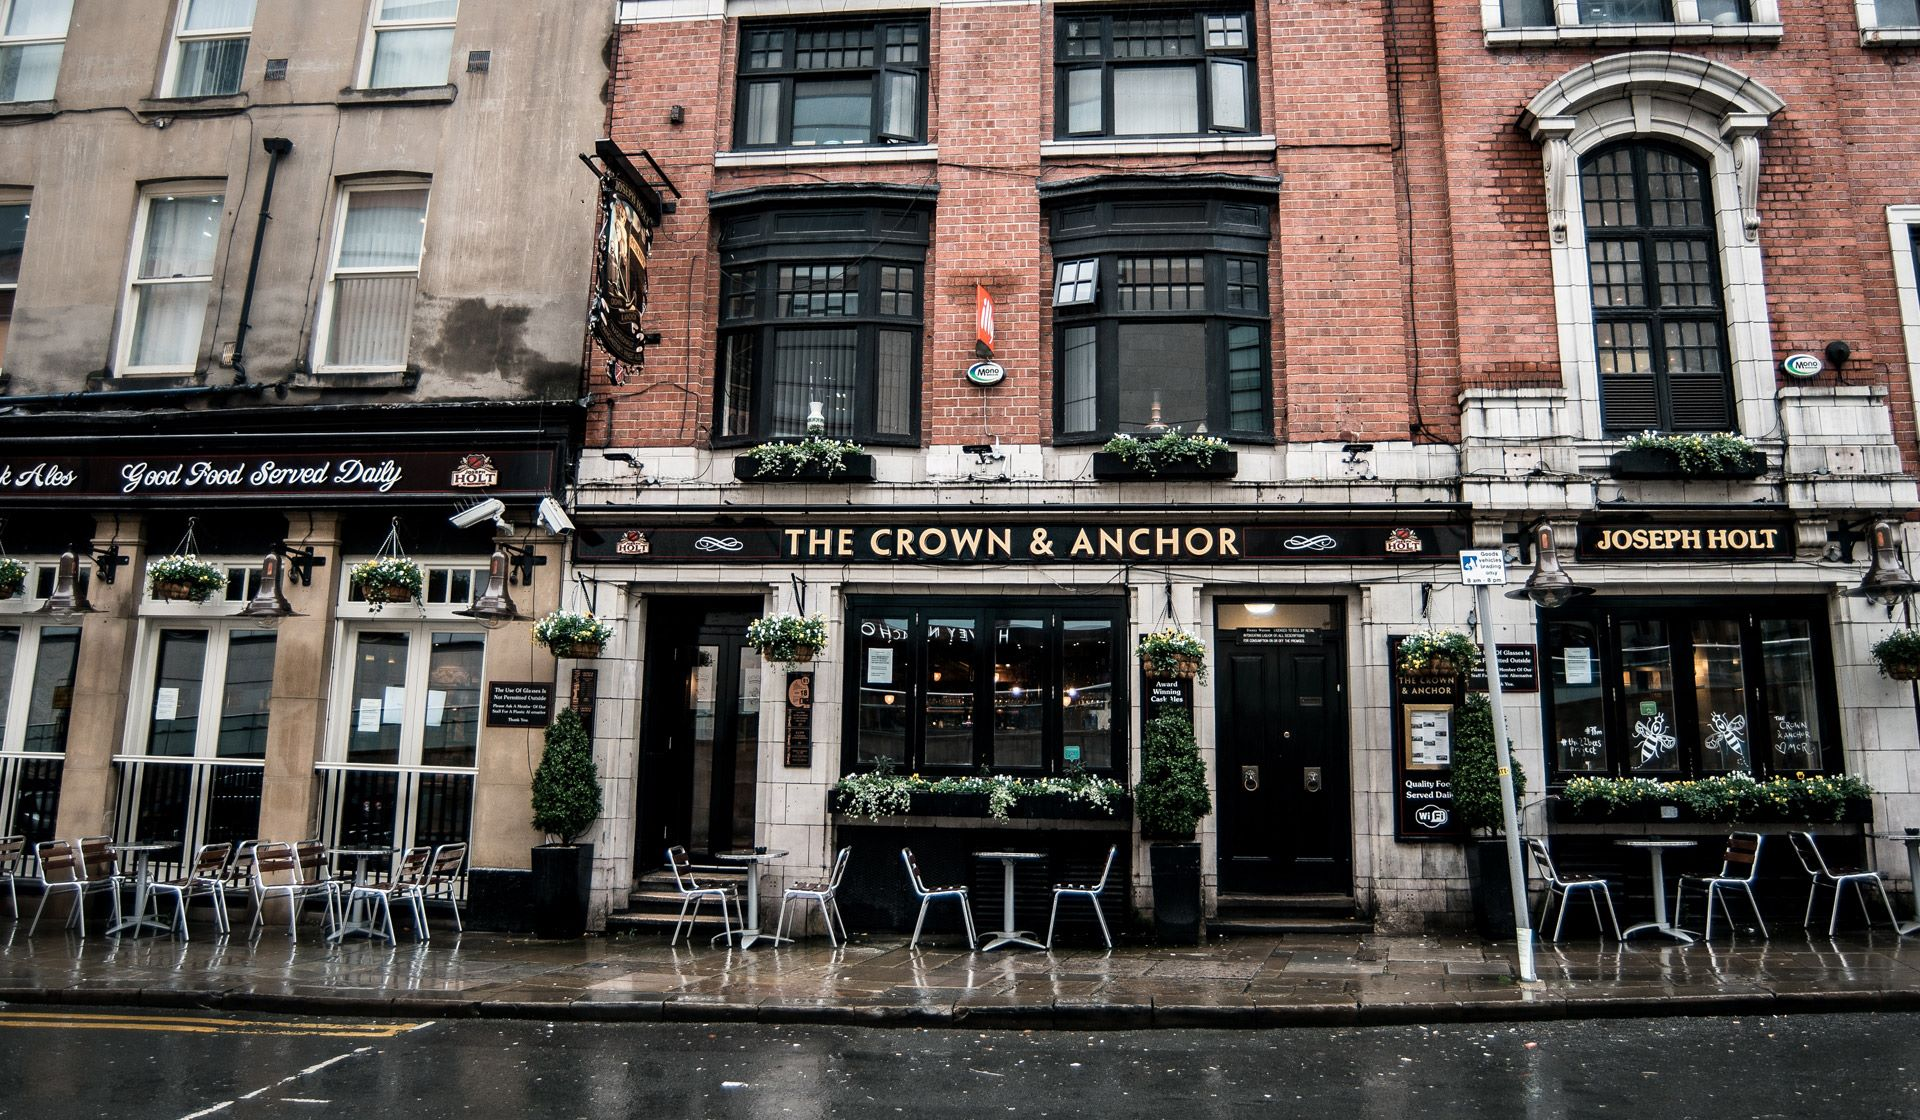 crown and anchor joseph holt pub central manchester